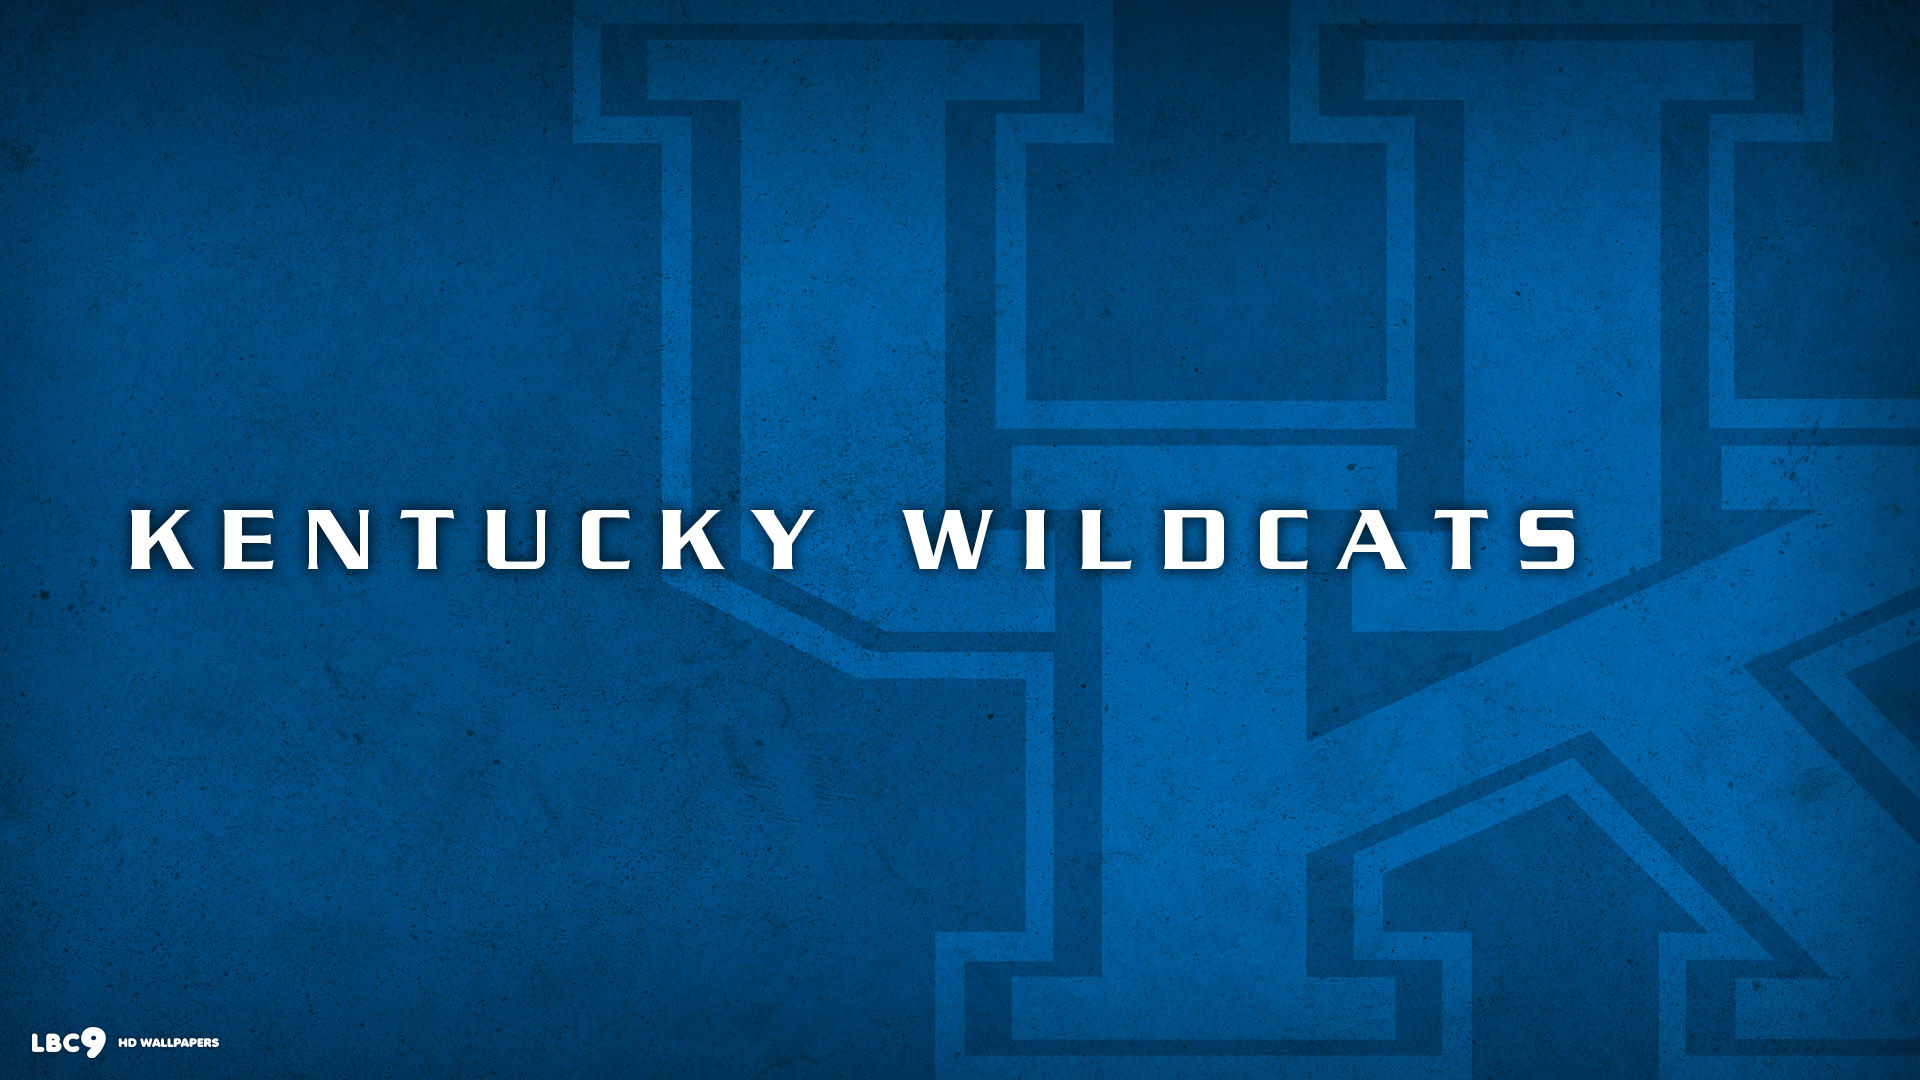 University Of Kentucky Wildcats Wallpaper Reptile 1920x1080